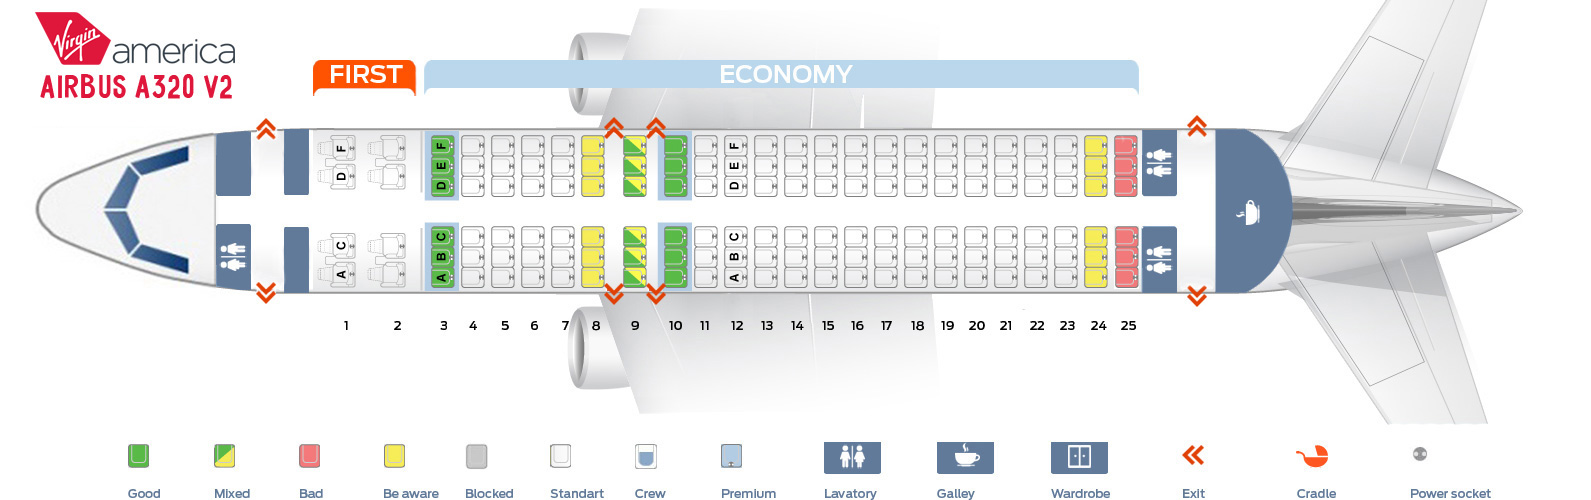 Seat map Airbus A320 version2 Virgin America